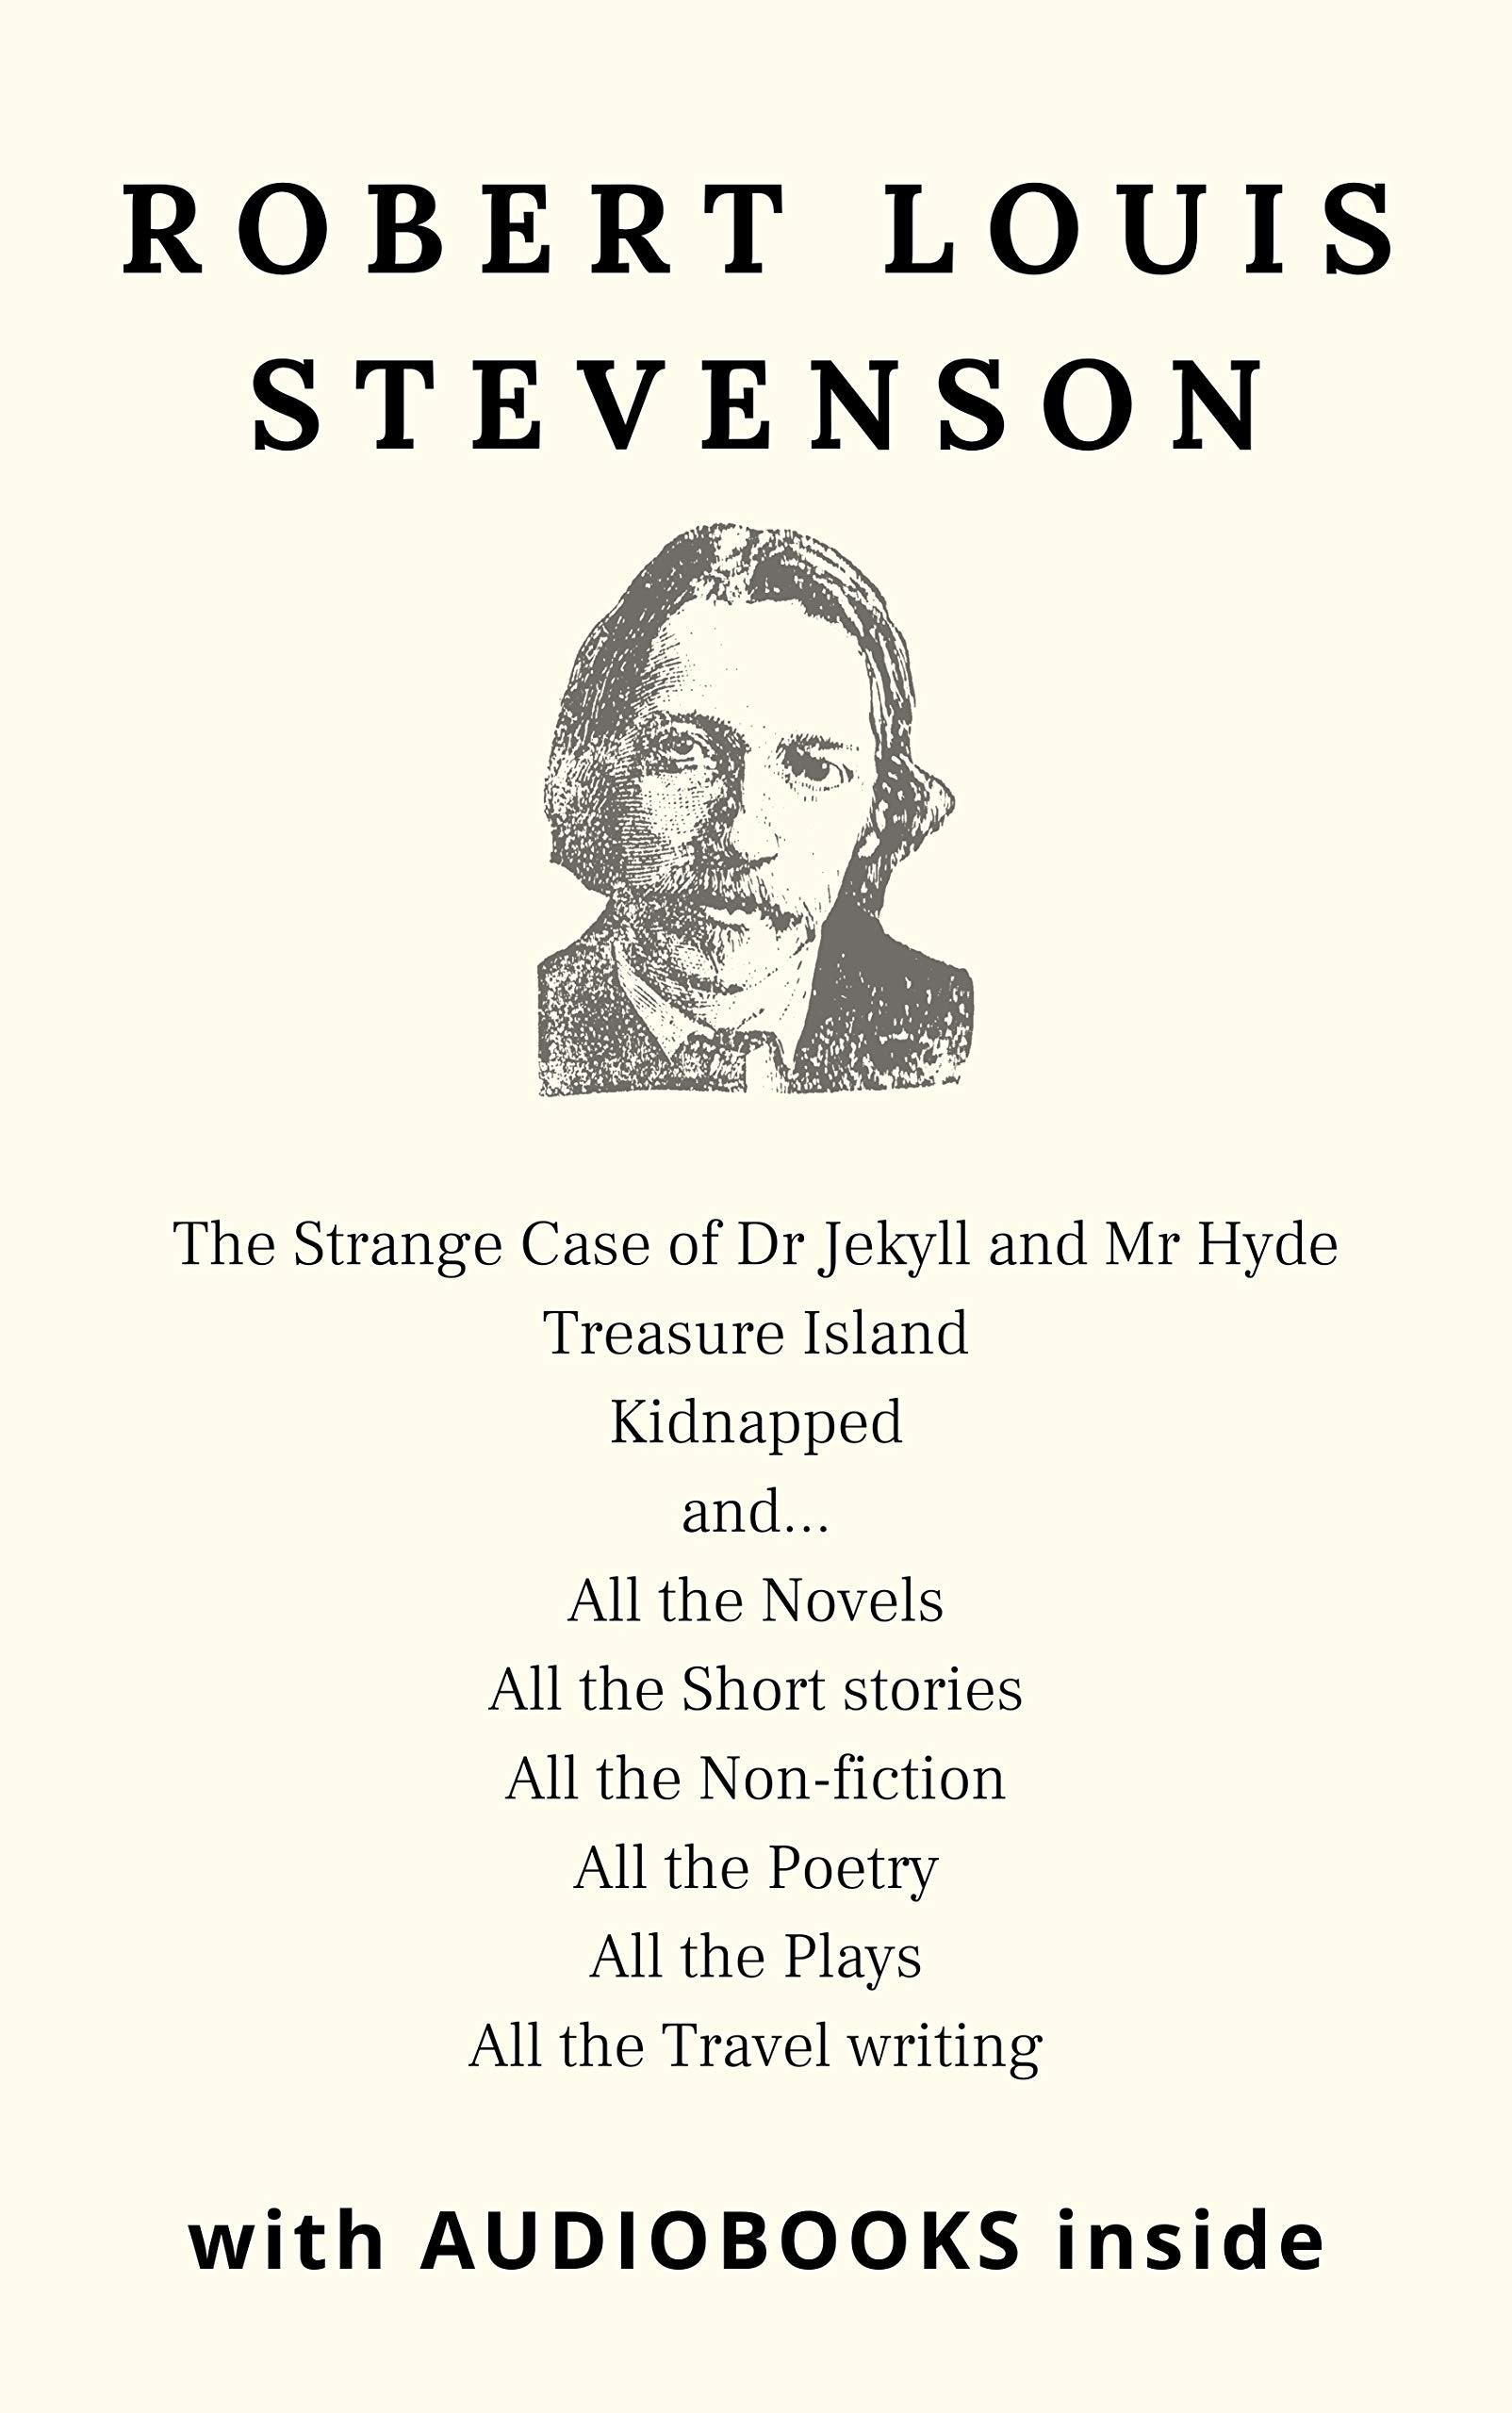 Robert Louis Stevenson (39 books) - WITH AUDIOBOOKS: Strange Case of Dr Jekyll and Mr Hyde, Treasure Island, Kidnapped - the Novels, the Short stories, the Non-fiction, the Poetry, the Travel writing